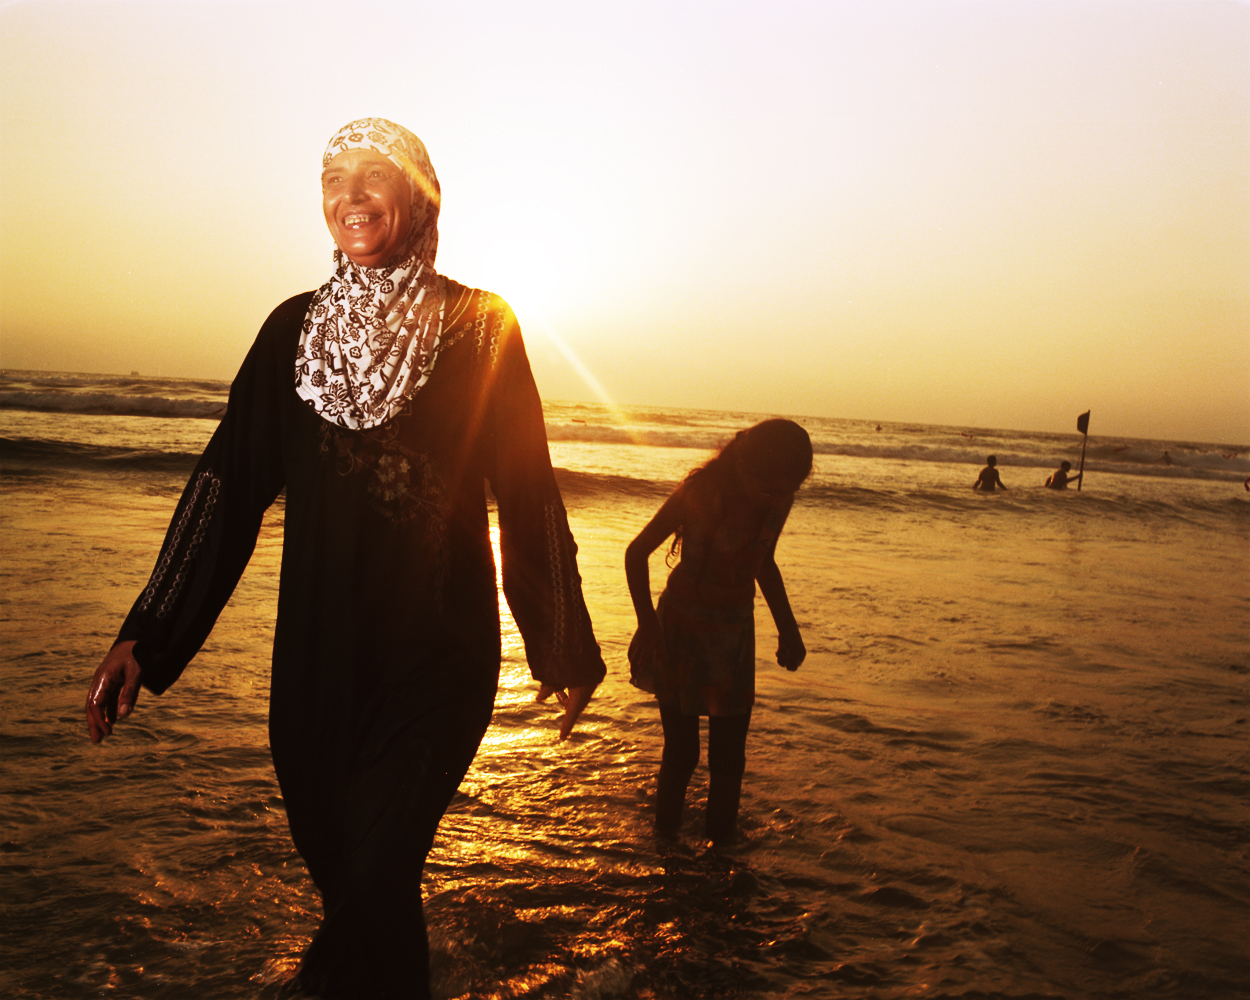 Fatima brings her children to the beach at sunset.